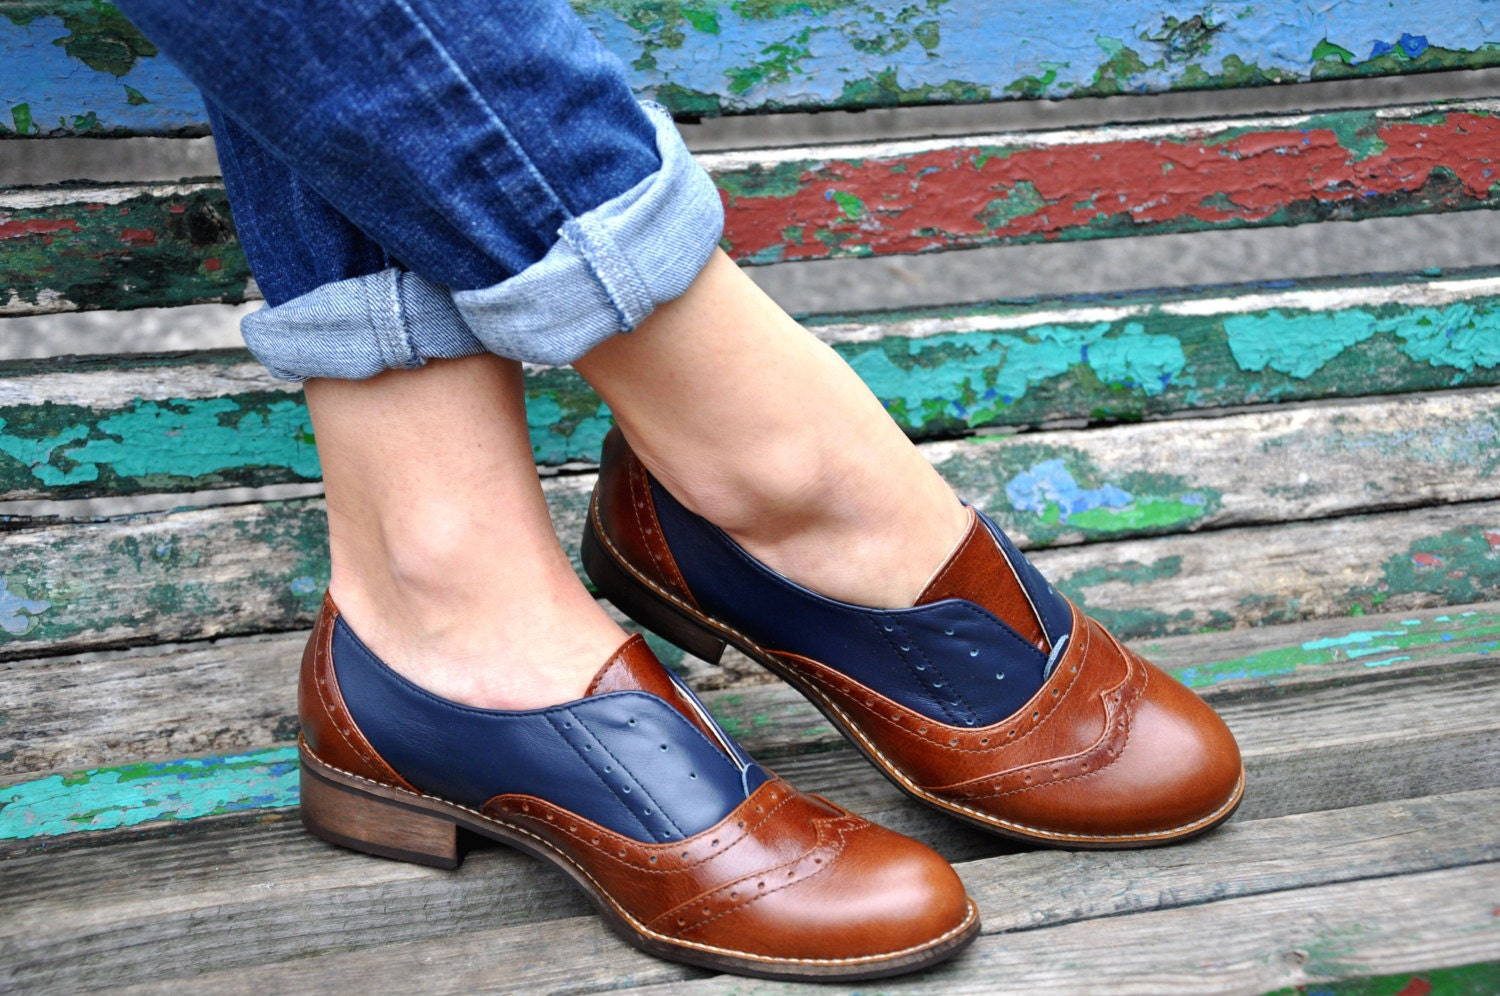 Pershing - Laceless Oxfords, Womens Brogues, Oxfords for Women, Slip on Shoes, Brown Leather Shoes, FREE customization!!!